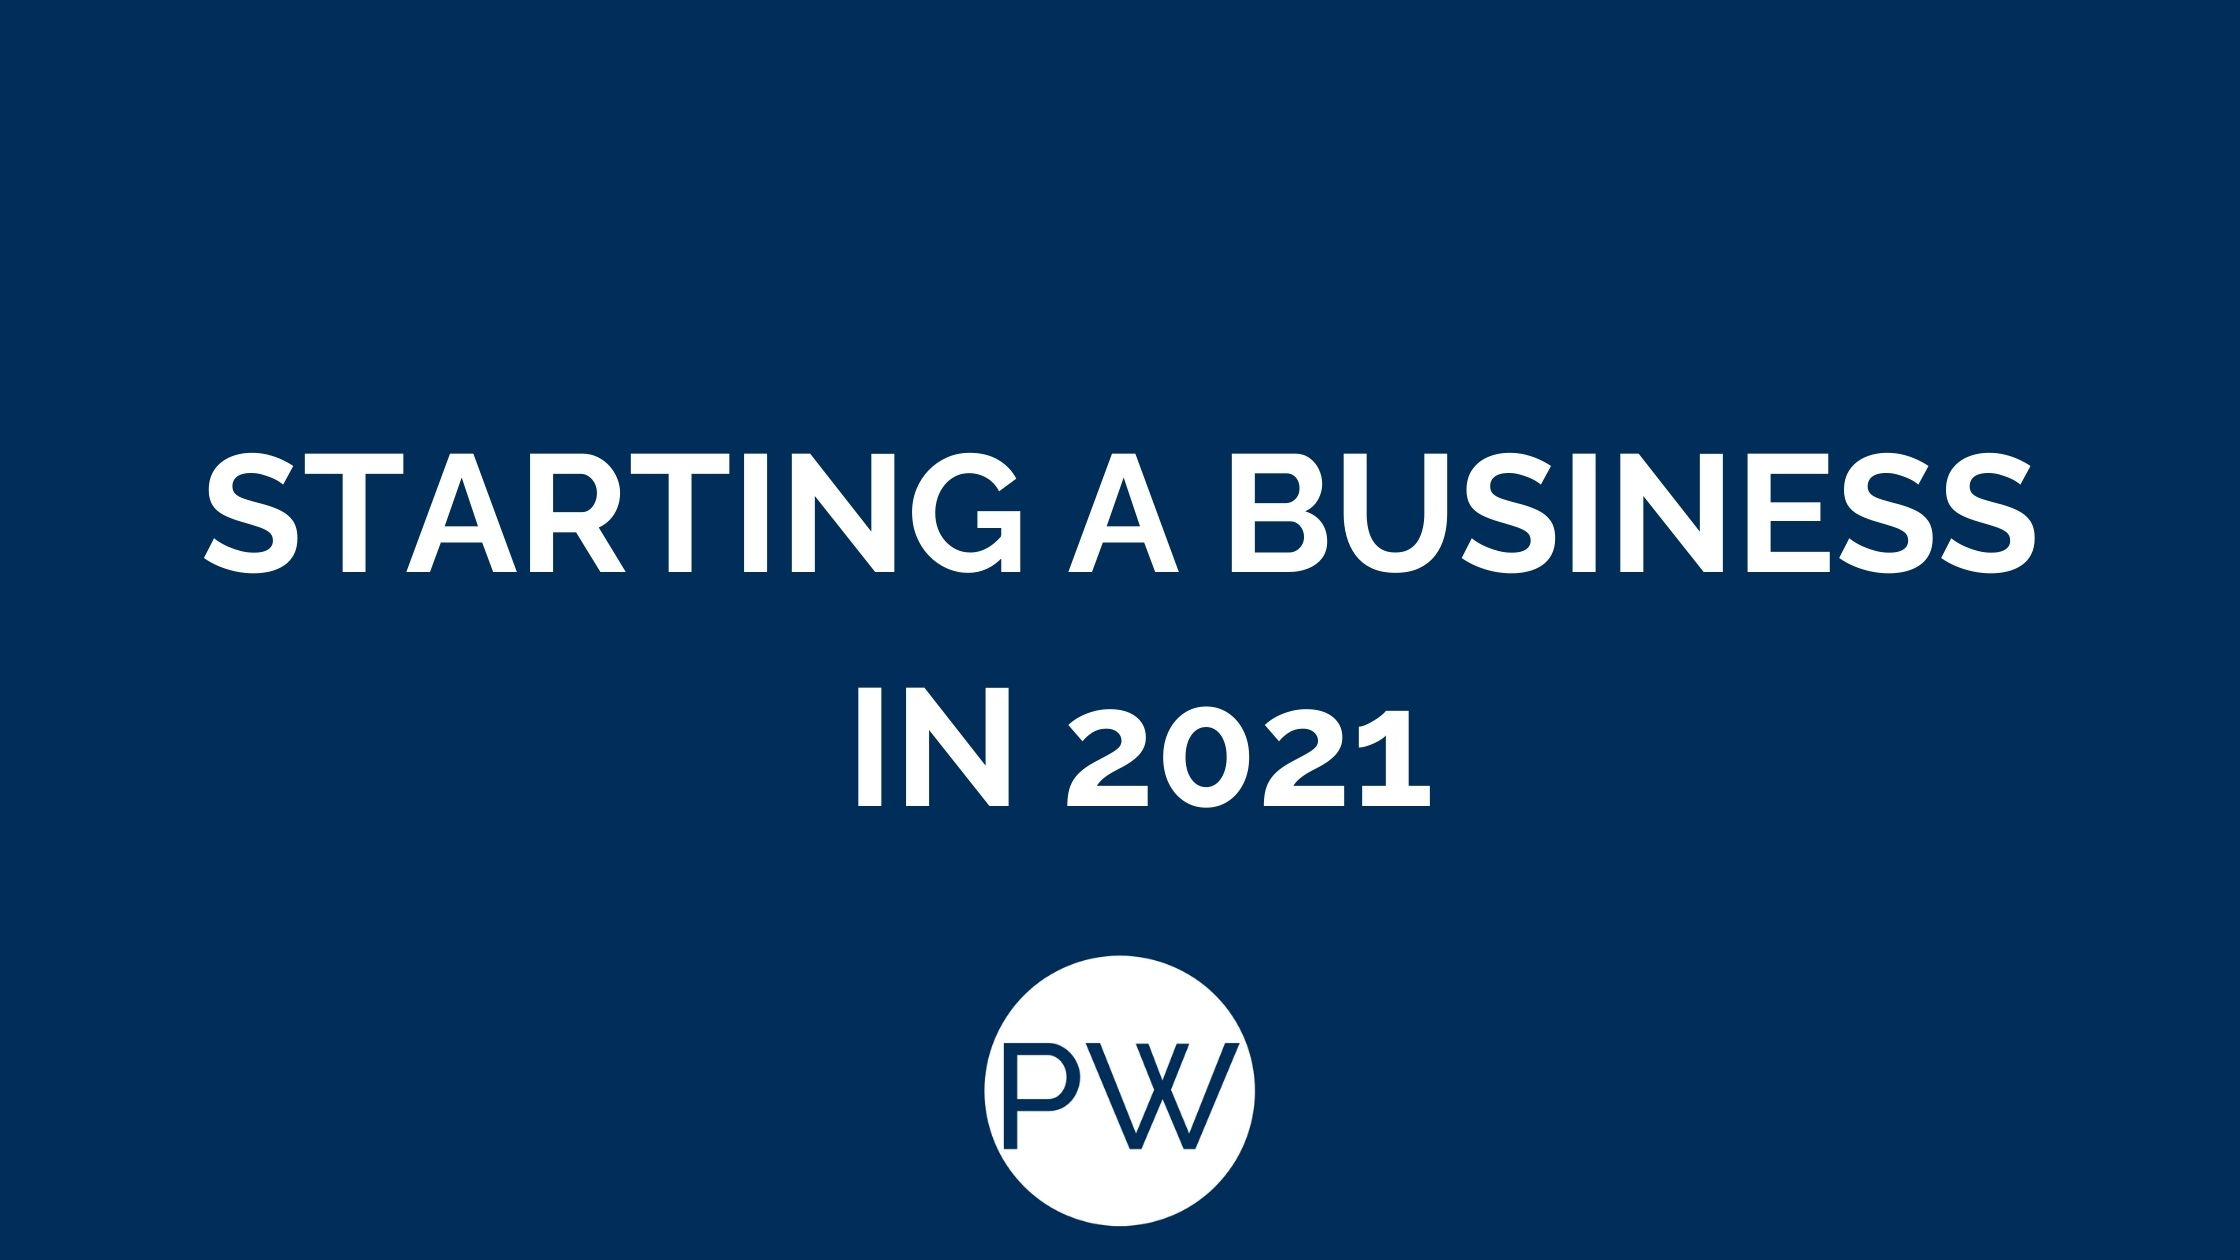 Starting a Business in 2021 Accountants in Altrincham South Manchester